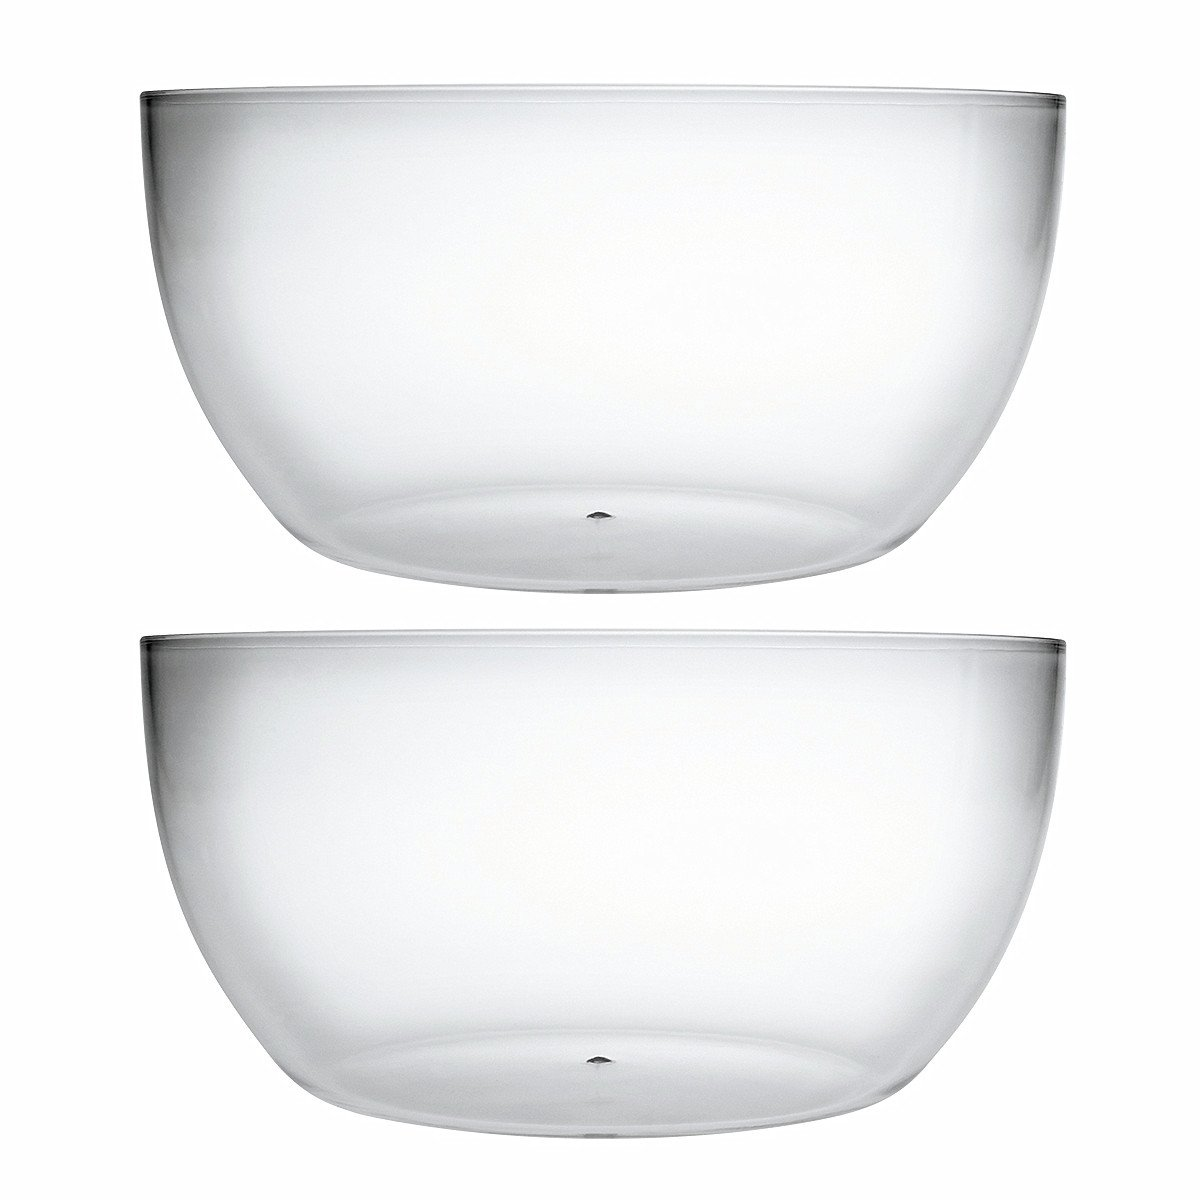 Large Acrylic Mixing And Serving Bowls, Great for Serving Salad, Popcorn, Chips, Dips, Condiments, Break-Resistant Set of 2 Clear 146 oz Bekmore mb08013